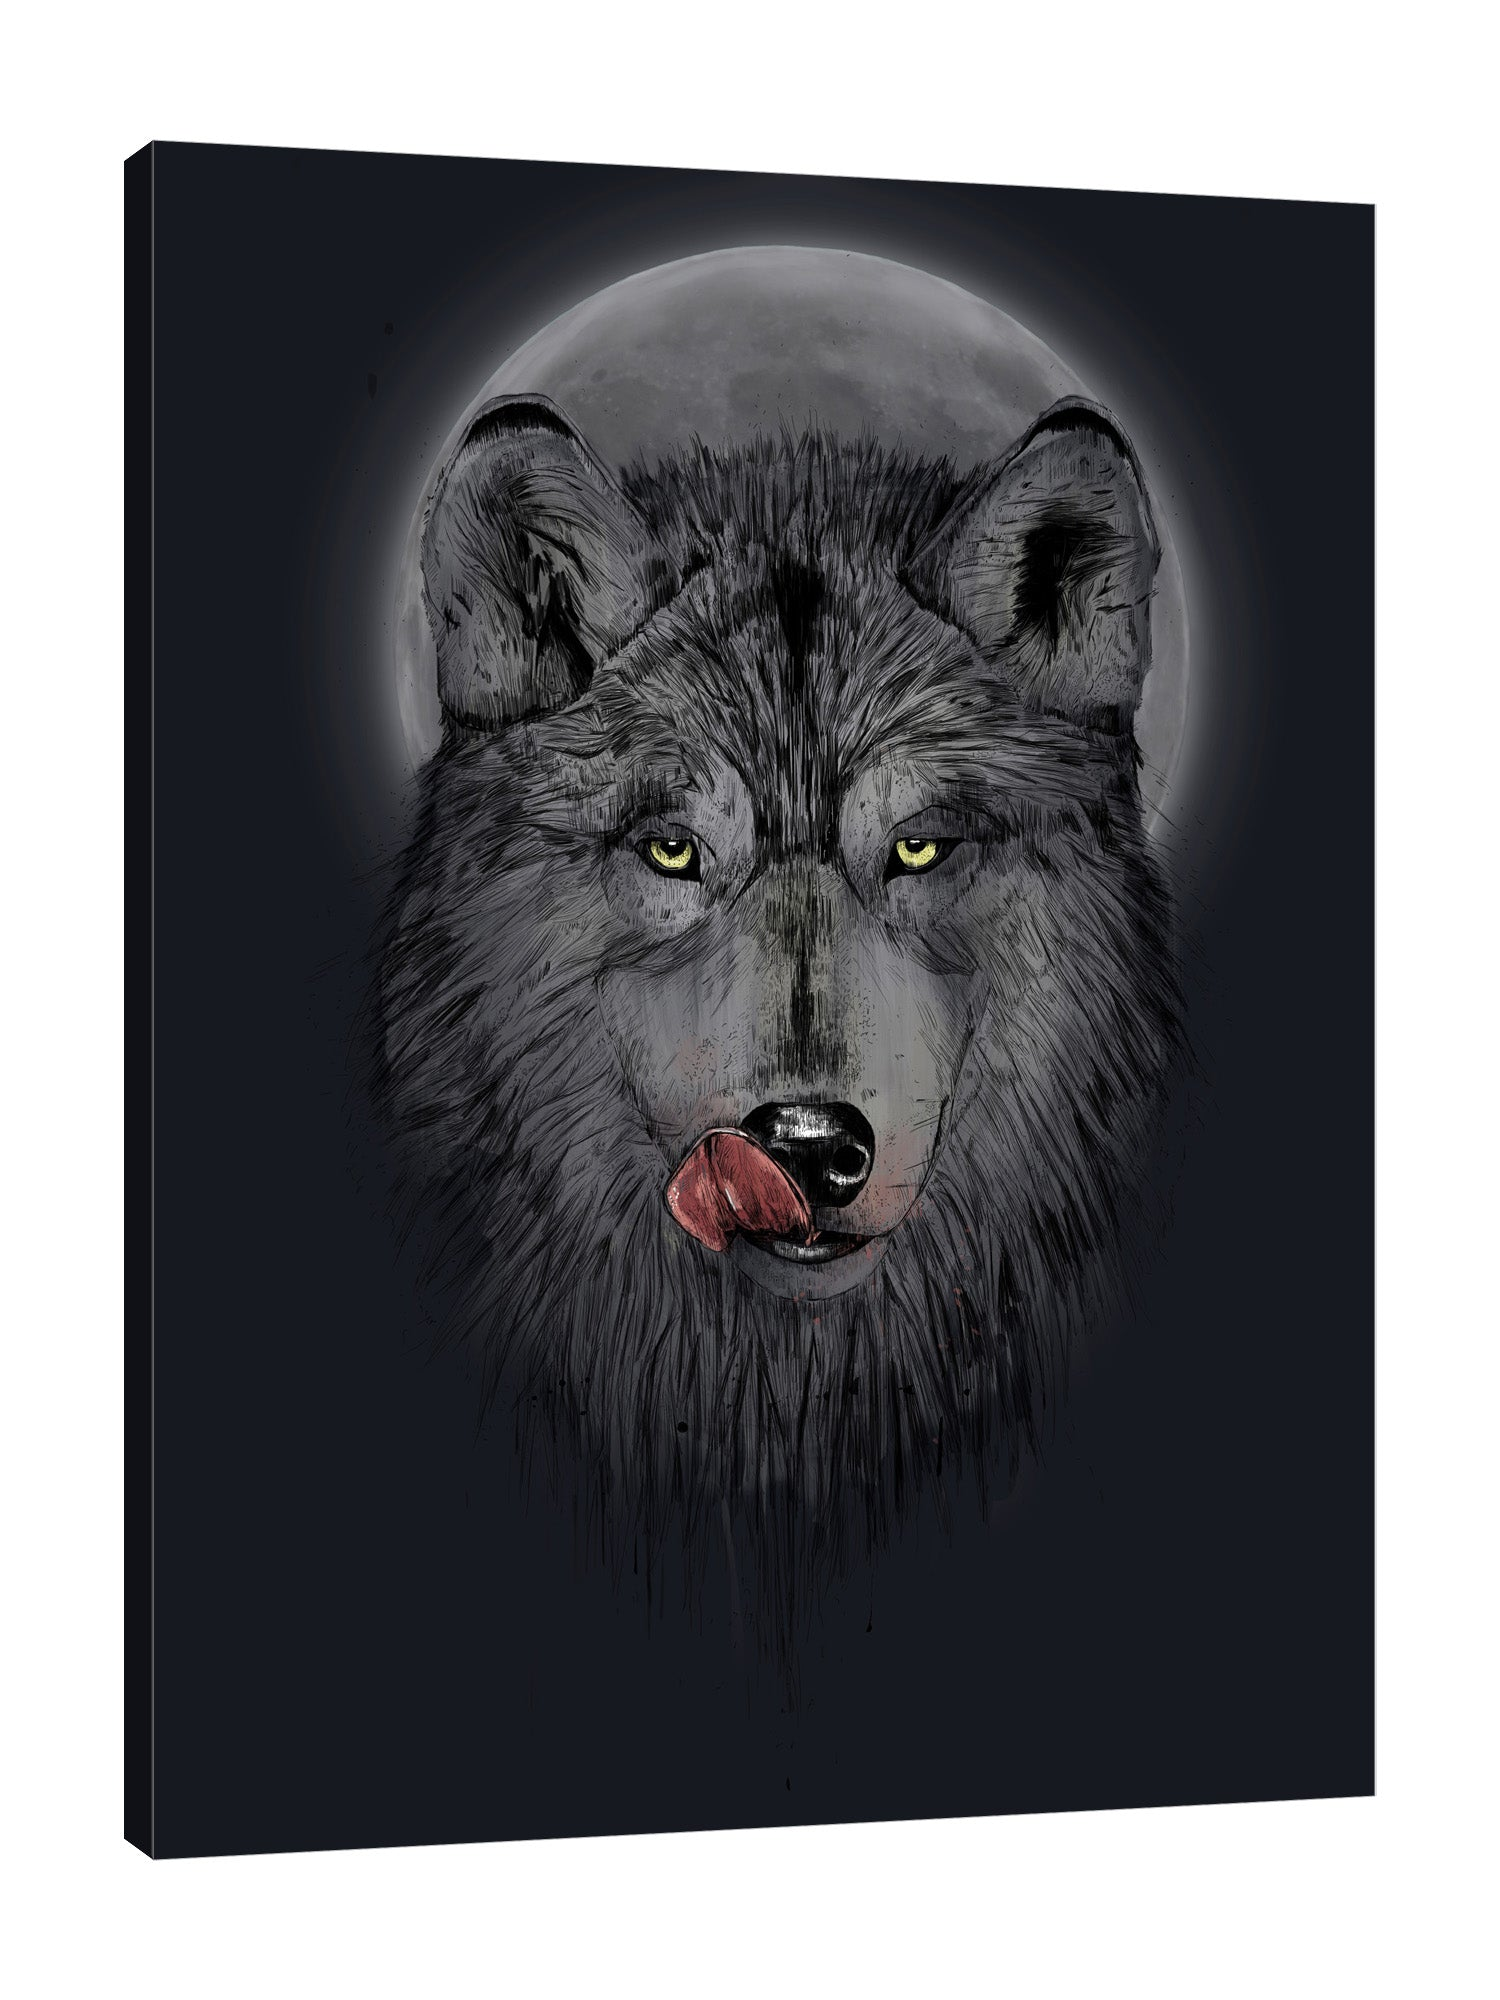 Balazs-Solti,Modern & Contemporary,Animals,animals,animal,wolf,wolves,moon,moons,black,hungry,dinner time,dinner,gray,Blue,White,Charcoal Gray,Black,Navy Blue,Green,Sea Green,Gray